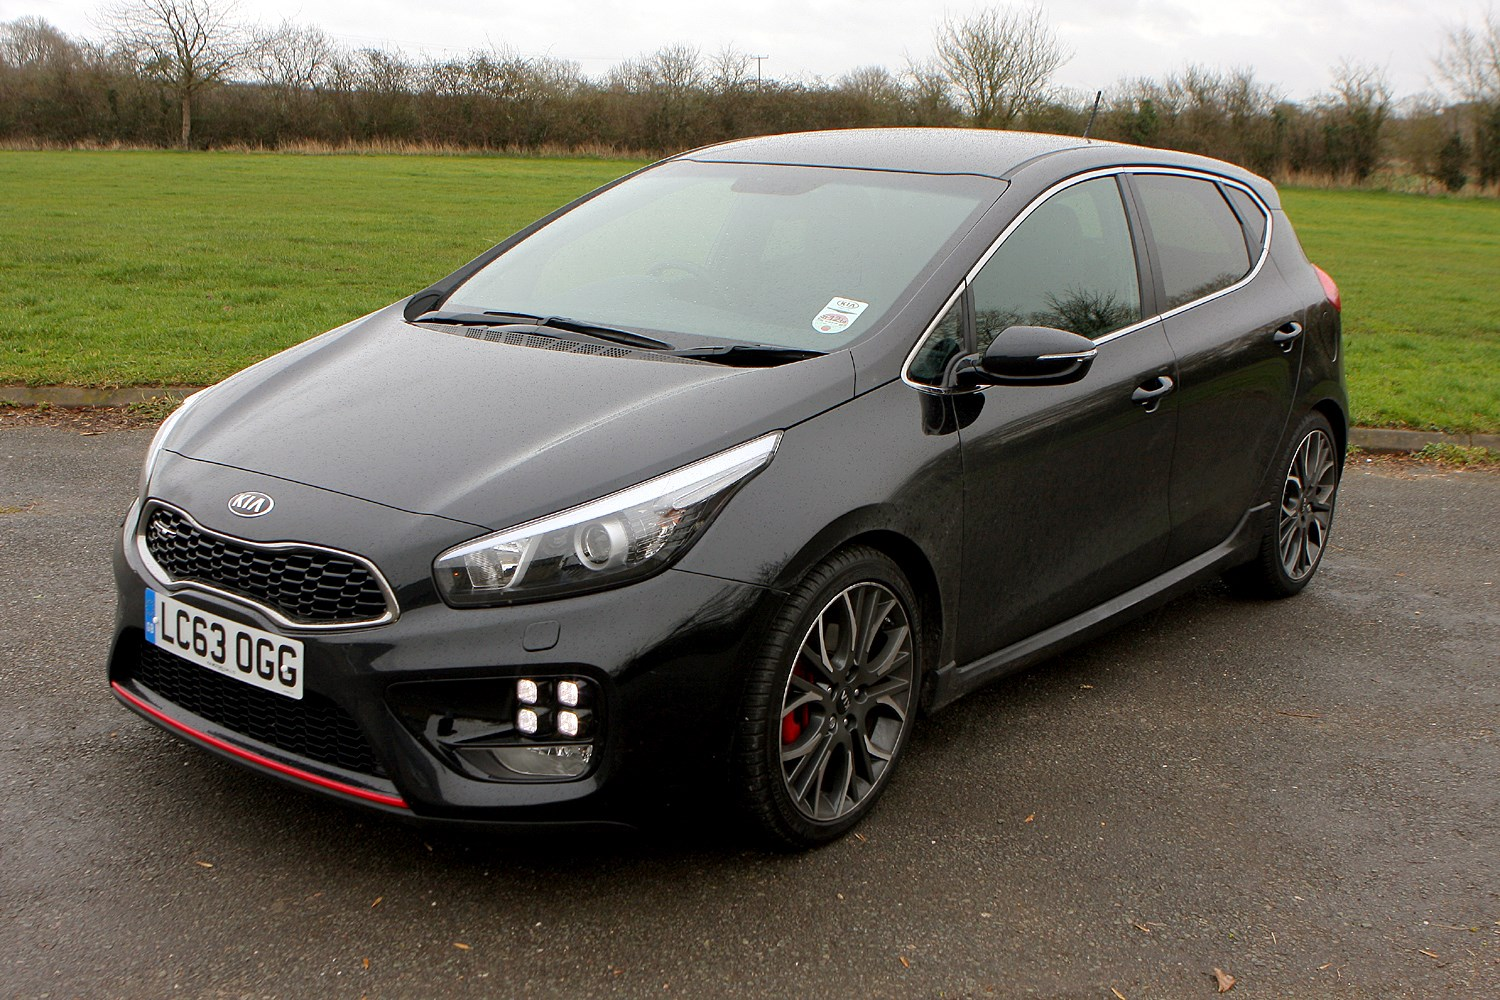 Kia Ceed Engine >> Kia Ceed GT (2013 - ) Photos | Parkers